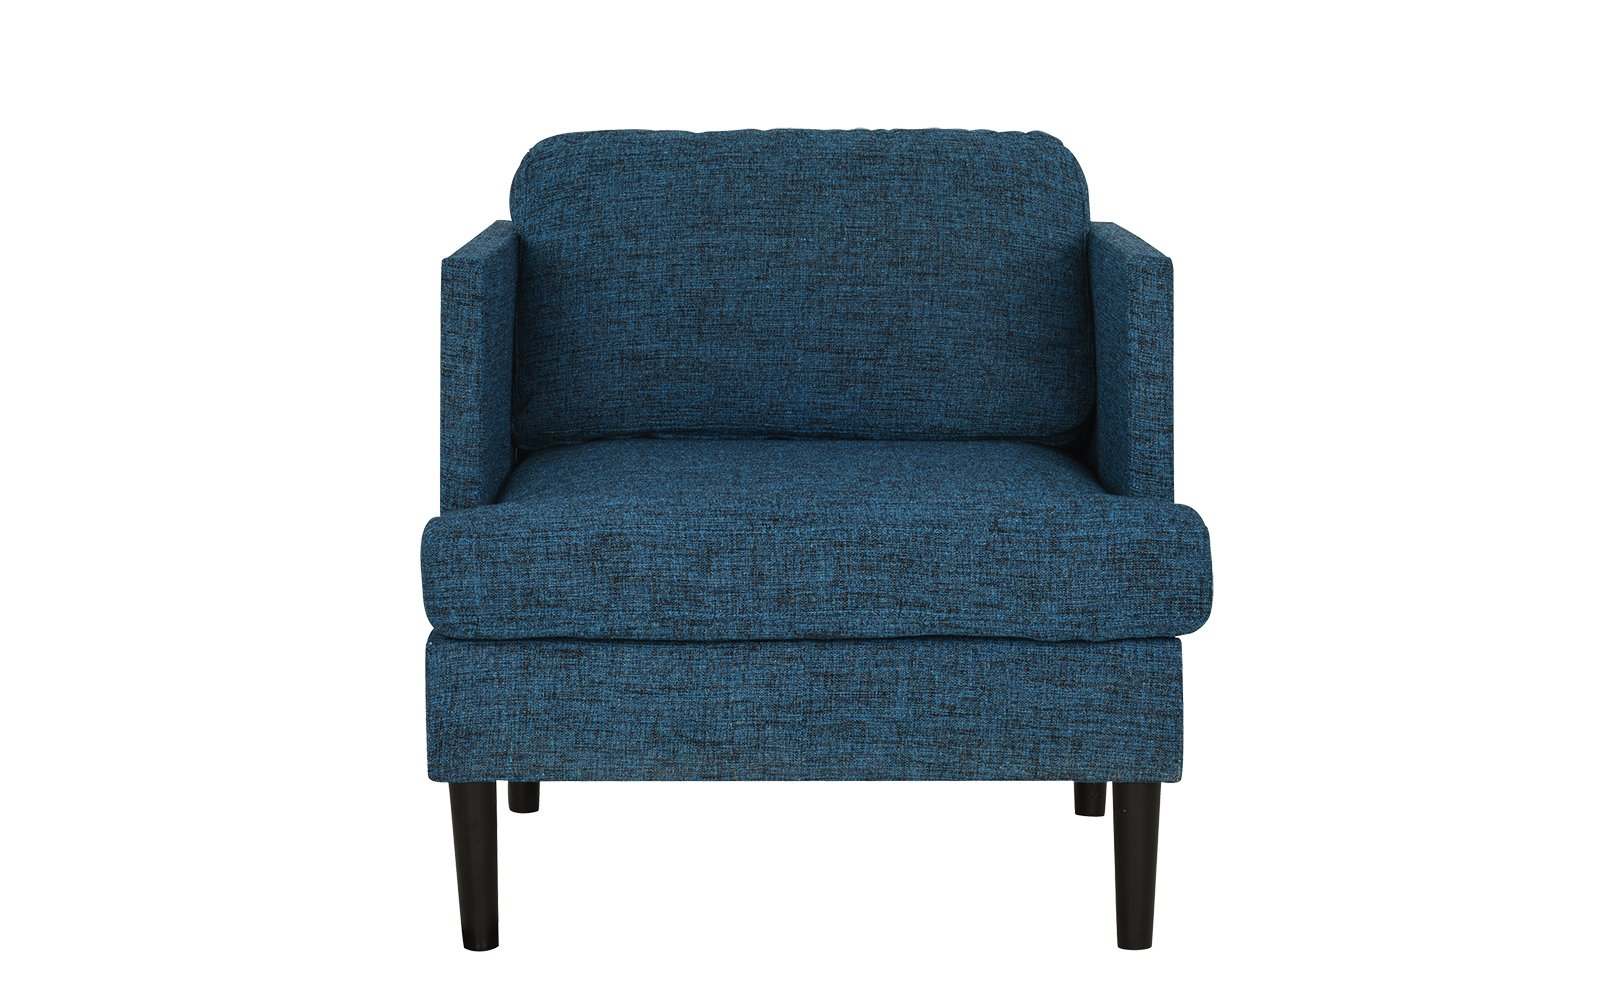 Blue Modern Accent Chairs.Details About Blue Mid Century Modern Linen Fabric Armchair Living Room Accent Chair